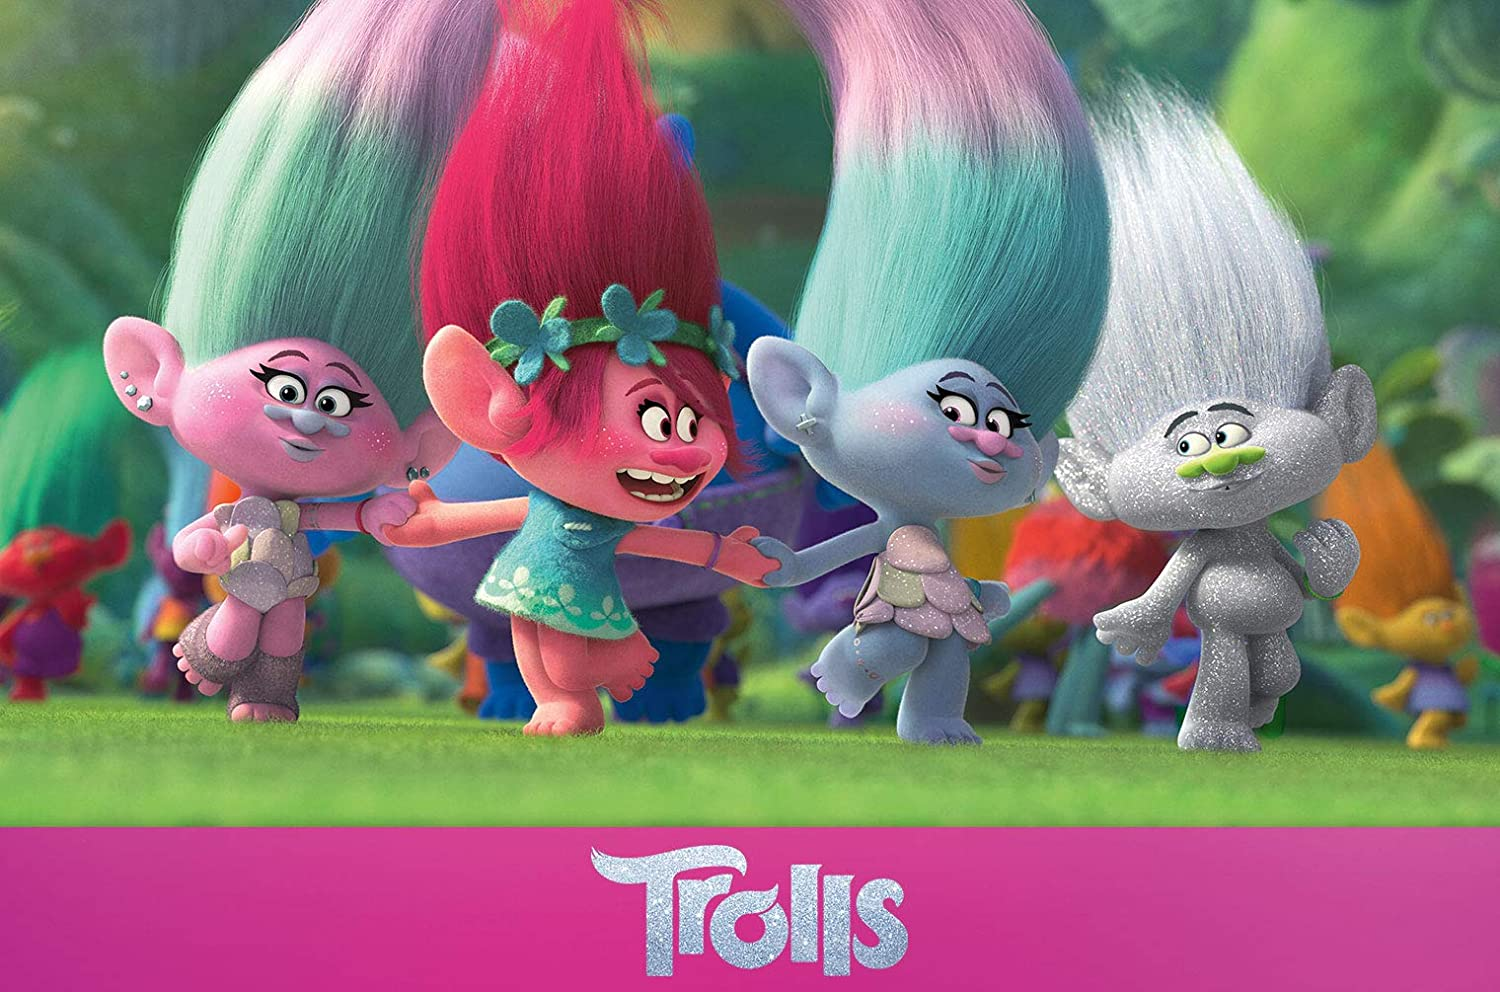 Trolls dvd original soundtrack cd exklusiv amazon.de: amazon.it